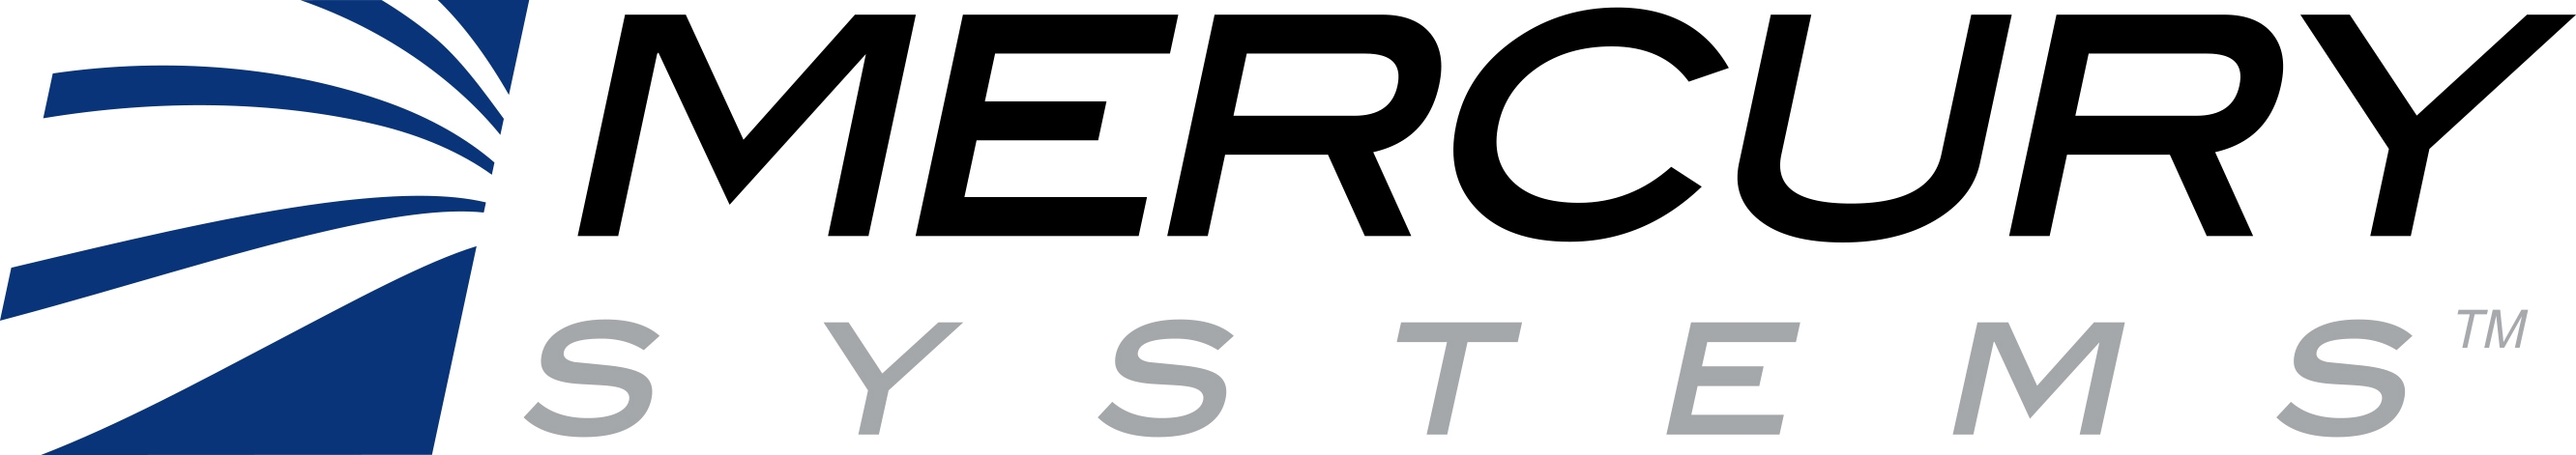 Mercury Systems Announces Support for Expanded  Intel Xeon Processor D-1500 Product Family